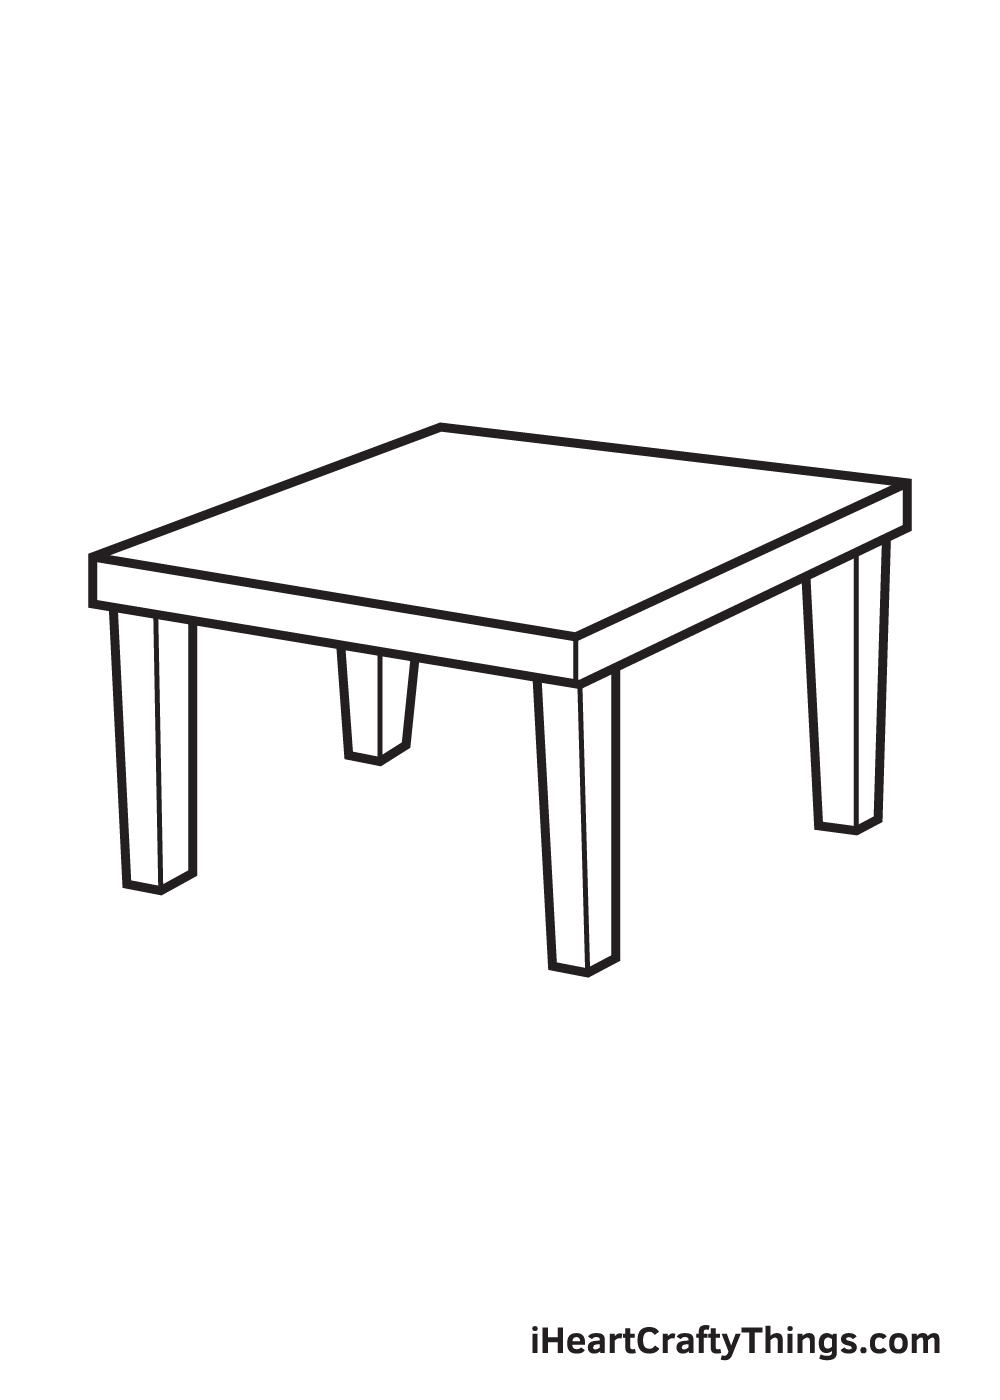 table drawing step 9